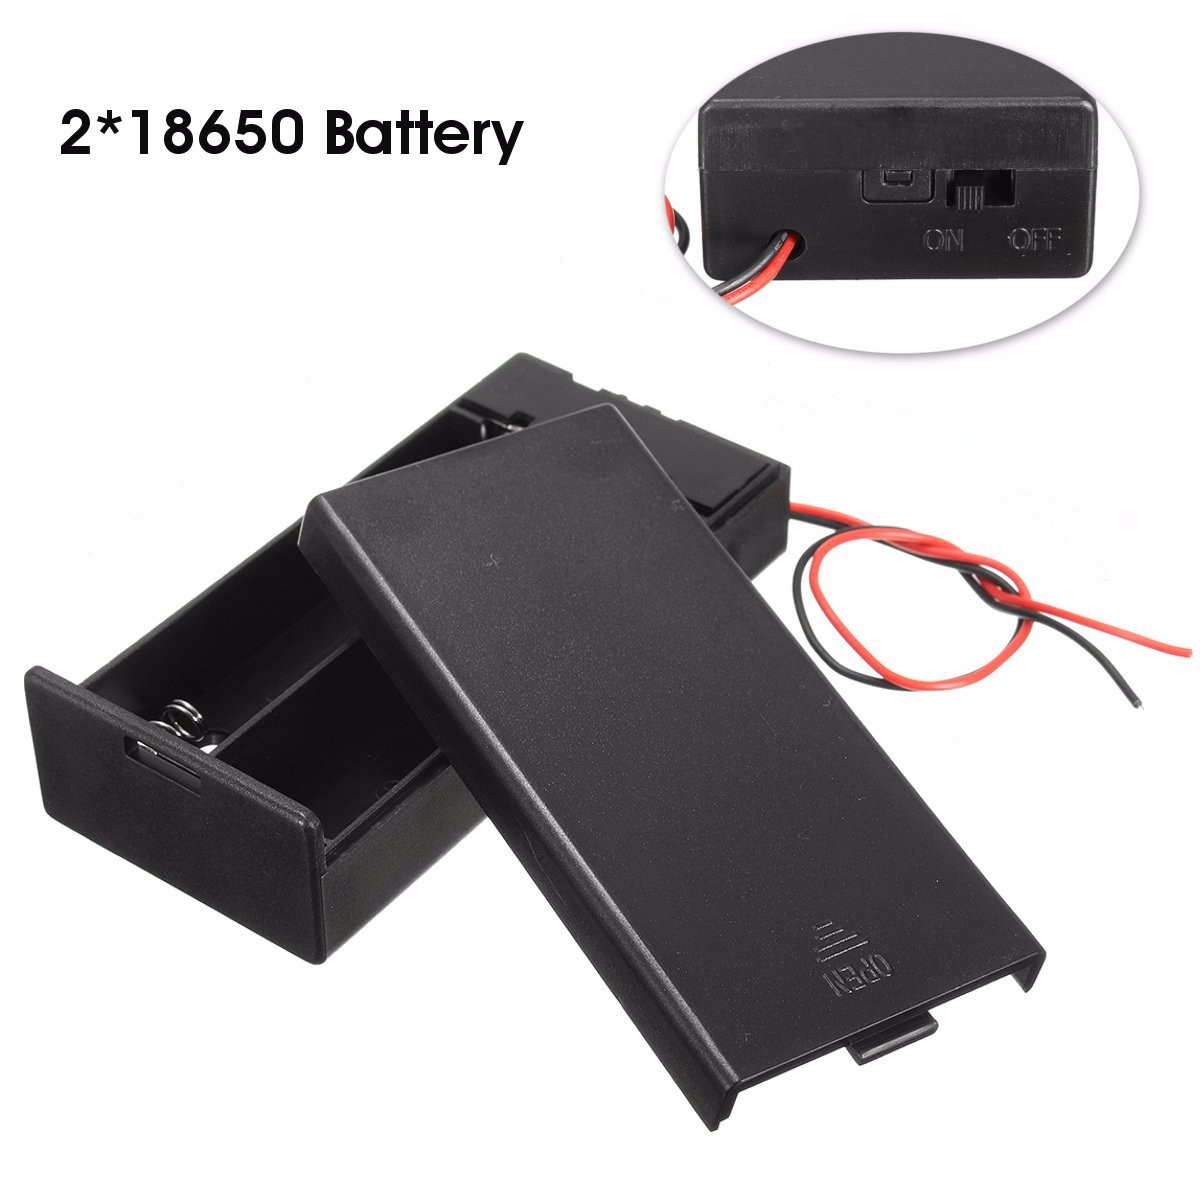 Plastic Battery Holder Storage Box Case Container w/ ON/OFF Switch For 2x18650 Batteries 3.7V